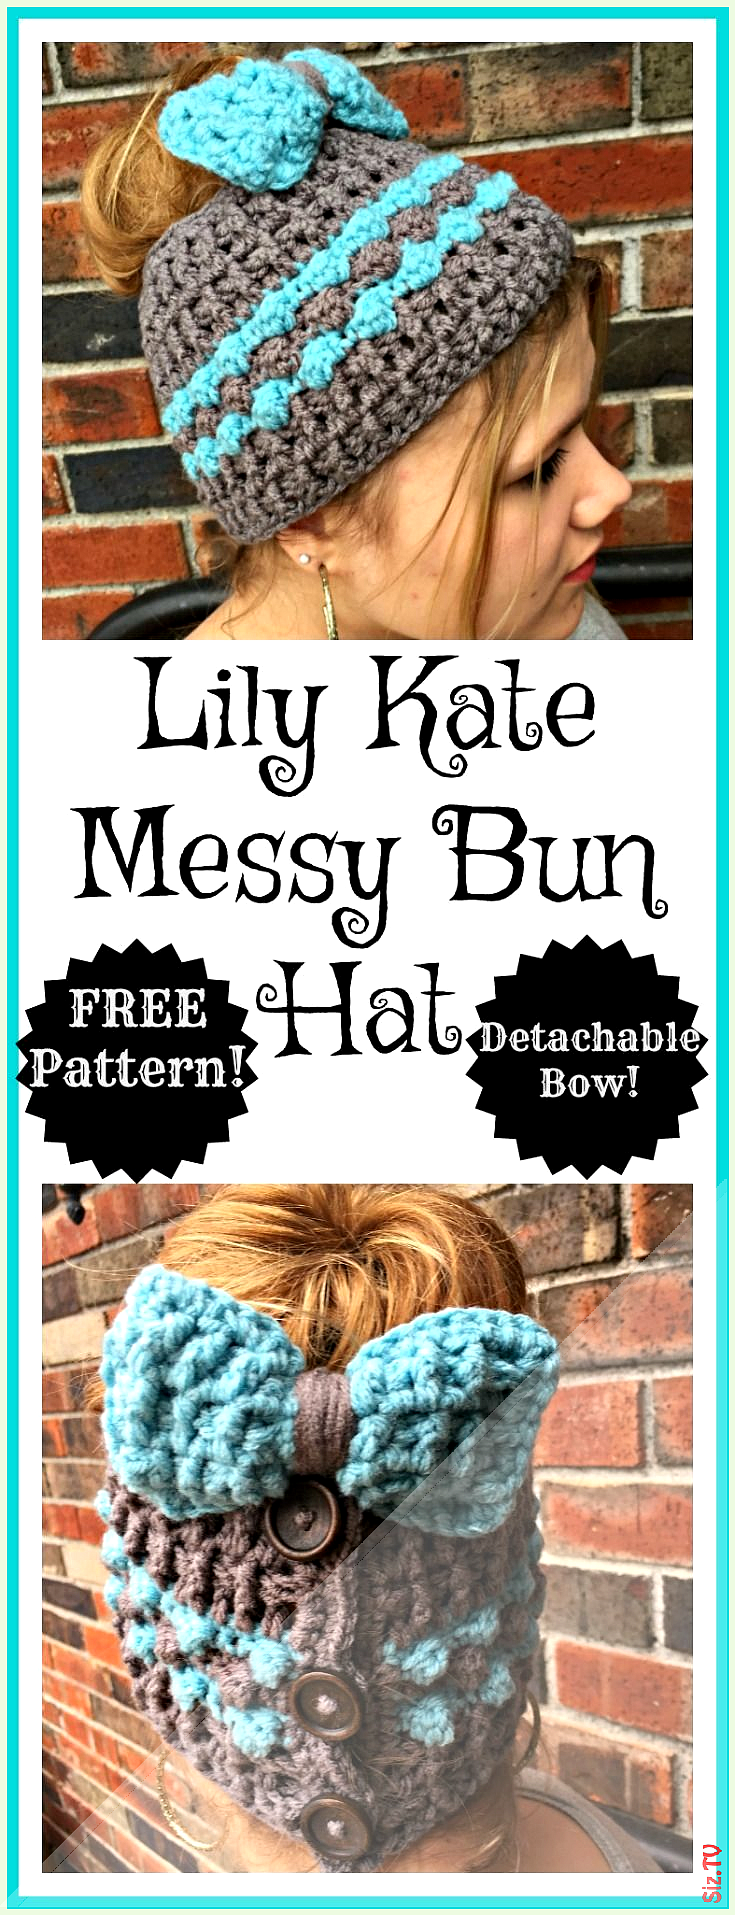 Free crochet pattern for a messy bun hat with detachable bow This is so cute messybunhat Free crochet pattern for a messy bun hat with detachable b  Free crochet pattern for a messy bun hat with detachable bow This is so cute messybunhat Free crochet pattern for nbsp  hellip   #crochet #detachable #messy #messybunaesthetic #messybunhat #pattern #kidsmessyhats